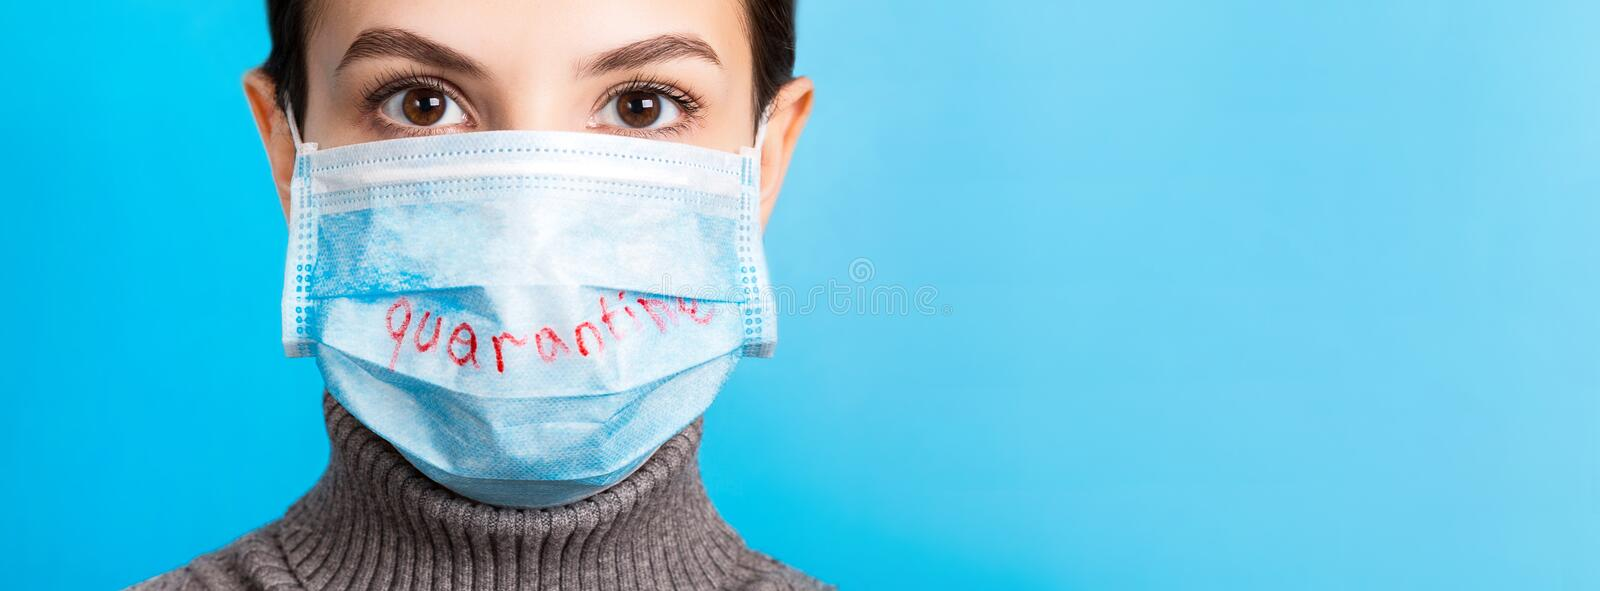 Portrait of a woman wearing medical mask with China quarantine word at blue background. Coronavirus and healthcare concept banner.  royalty free stock photography